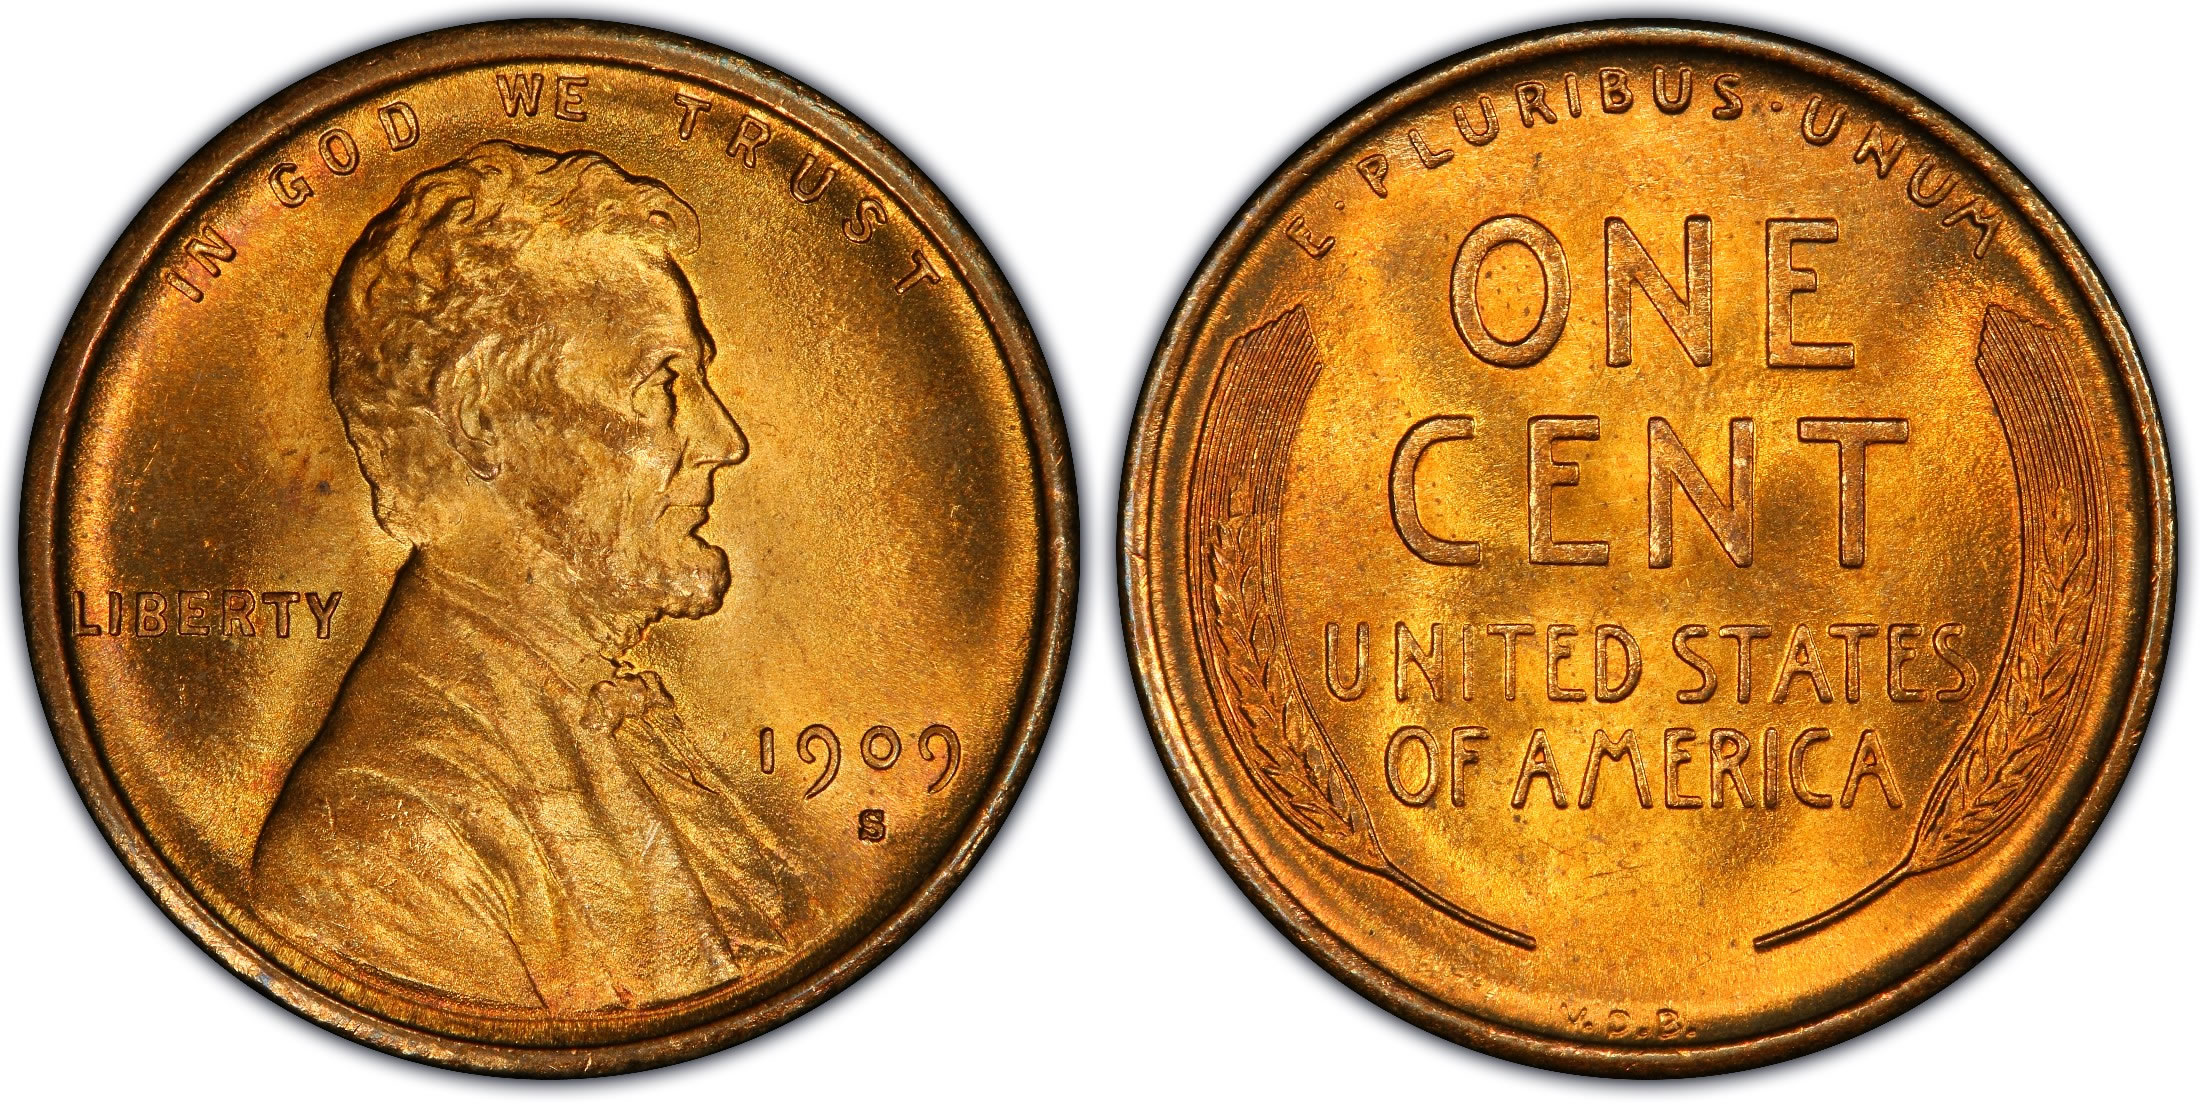 Close-up of 1909 penny featuring Abraham Lincoln